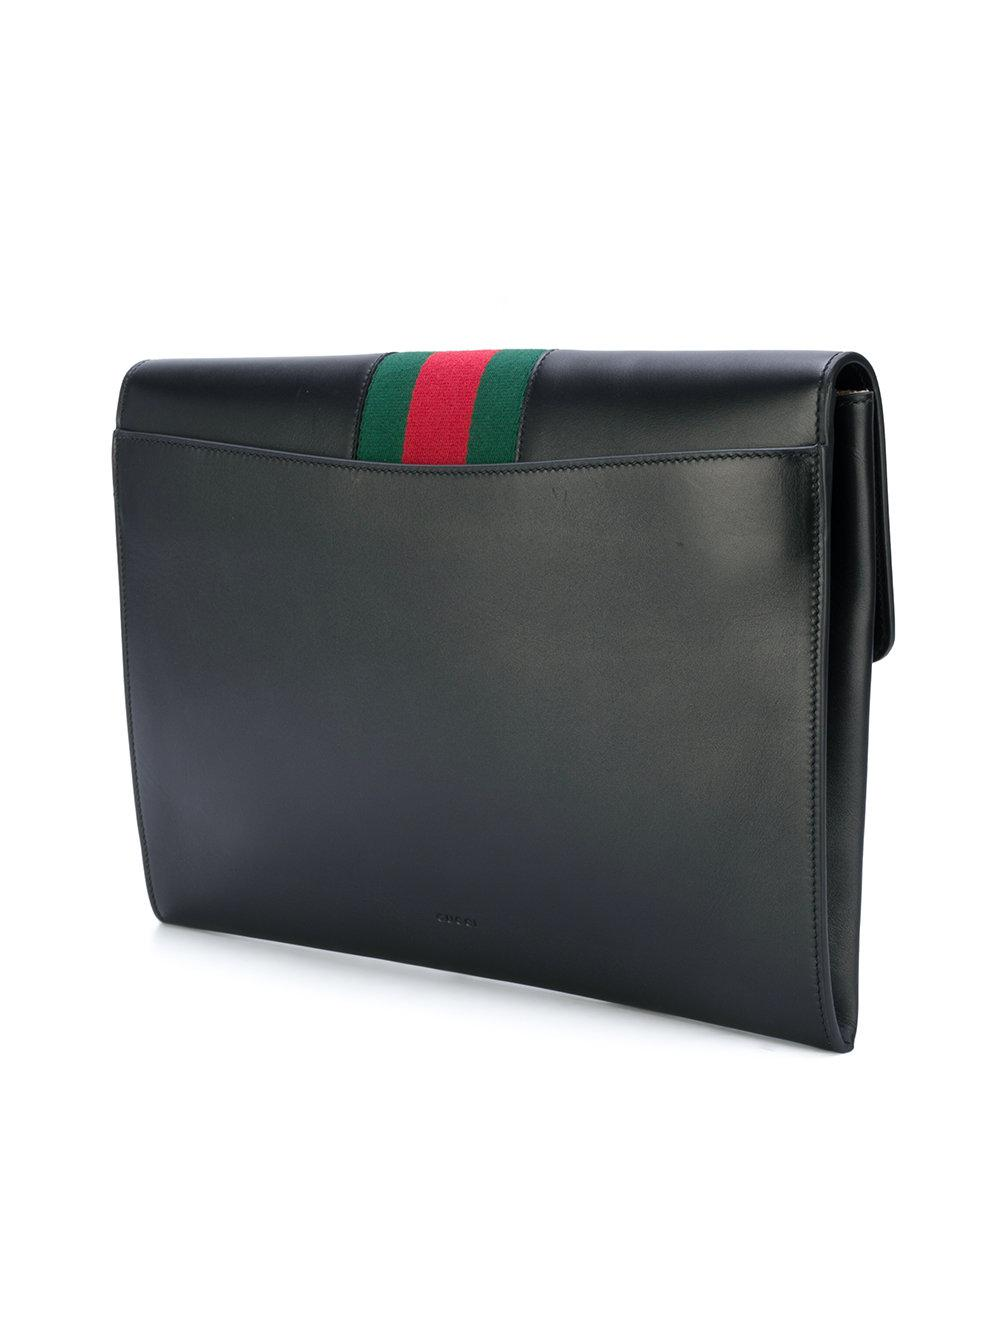 1e2be4a598f Gallery. Previously sold at  Farfetch · Women s Metallic Clutch Bags